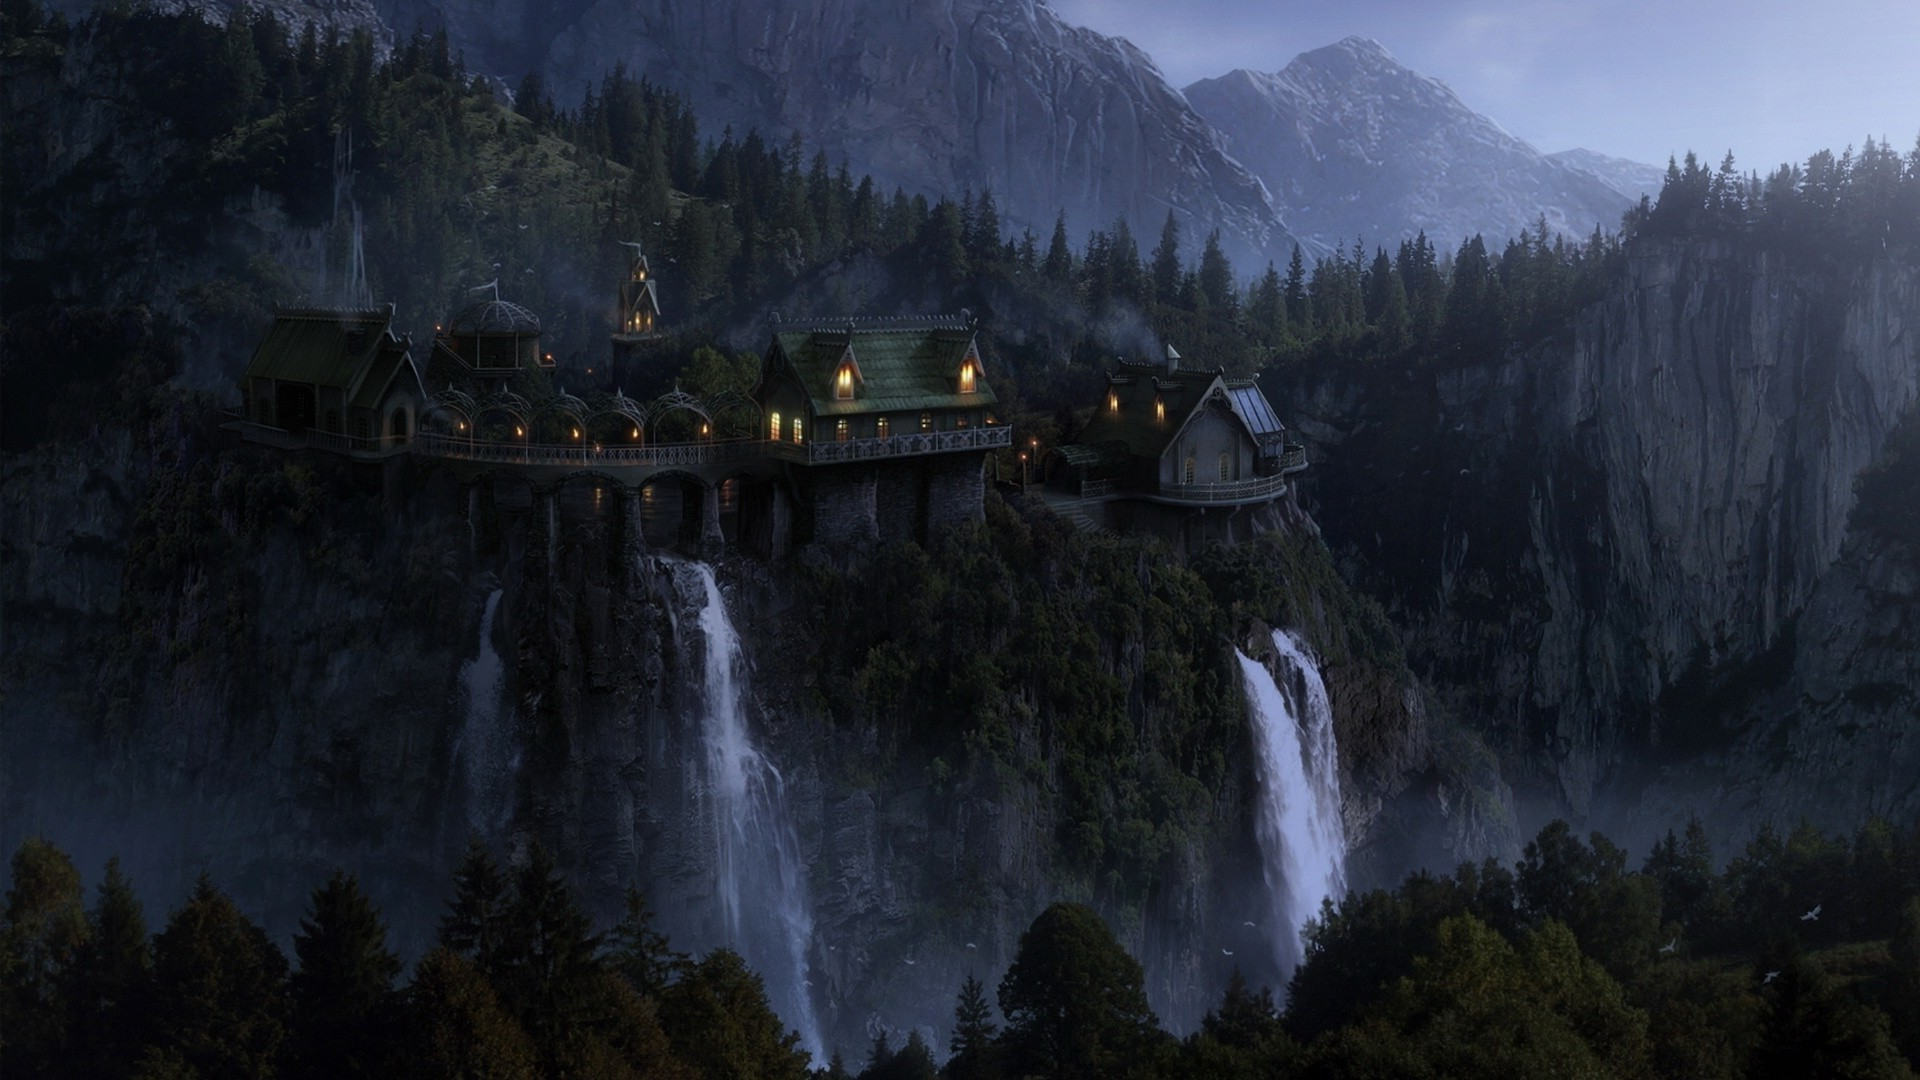 landscape, The Lord Of The Rings, Rivendell, The Hobbit, Fantasy Art  Wallpapers HD / Desktop and Mobile Backgrounds